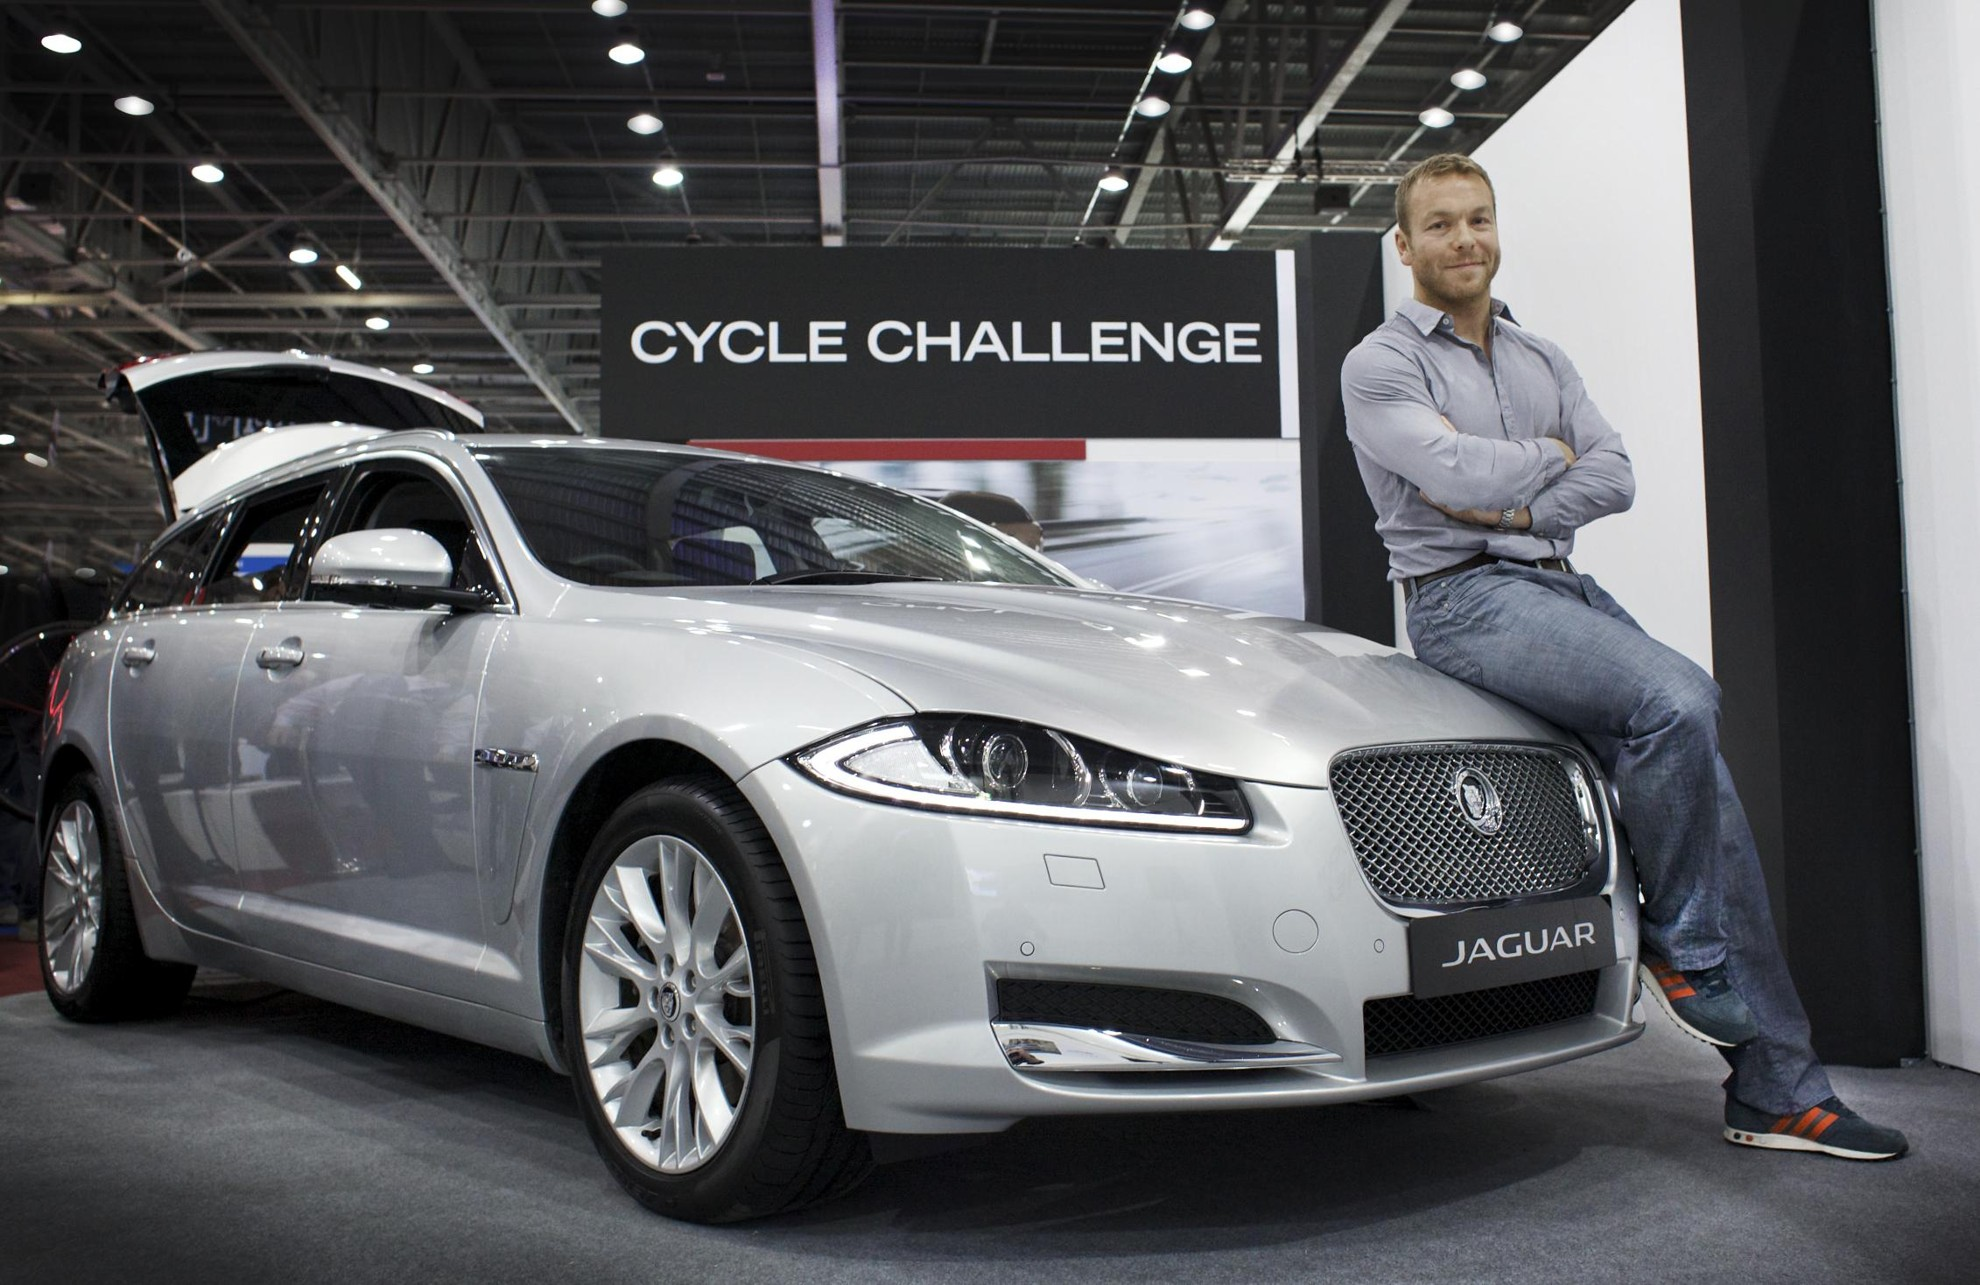 Jaguar Cycle Challenge